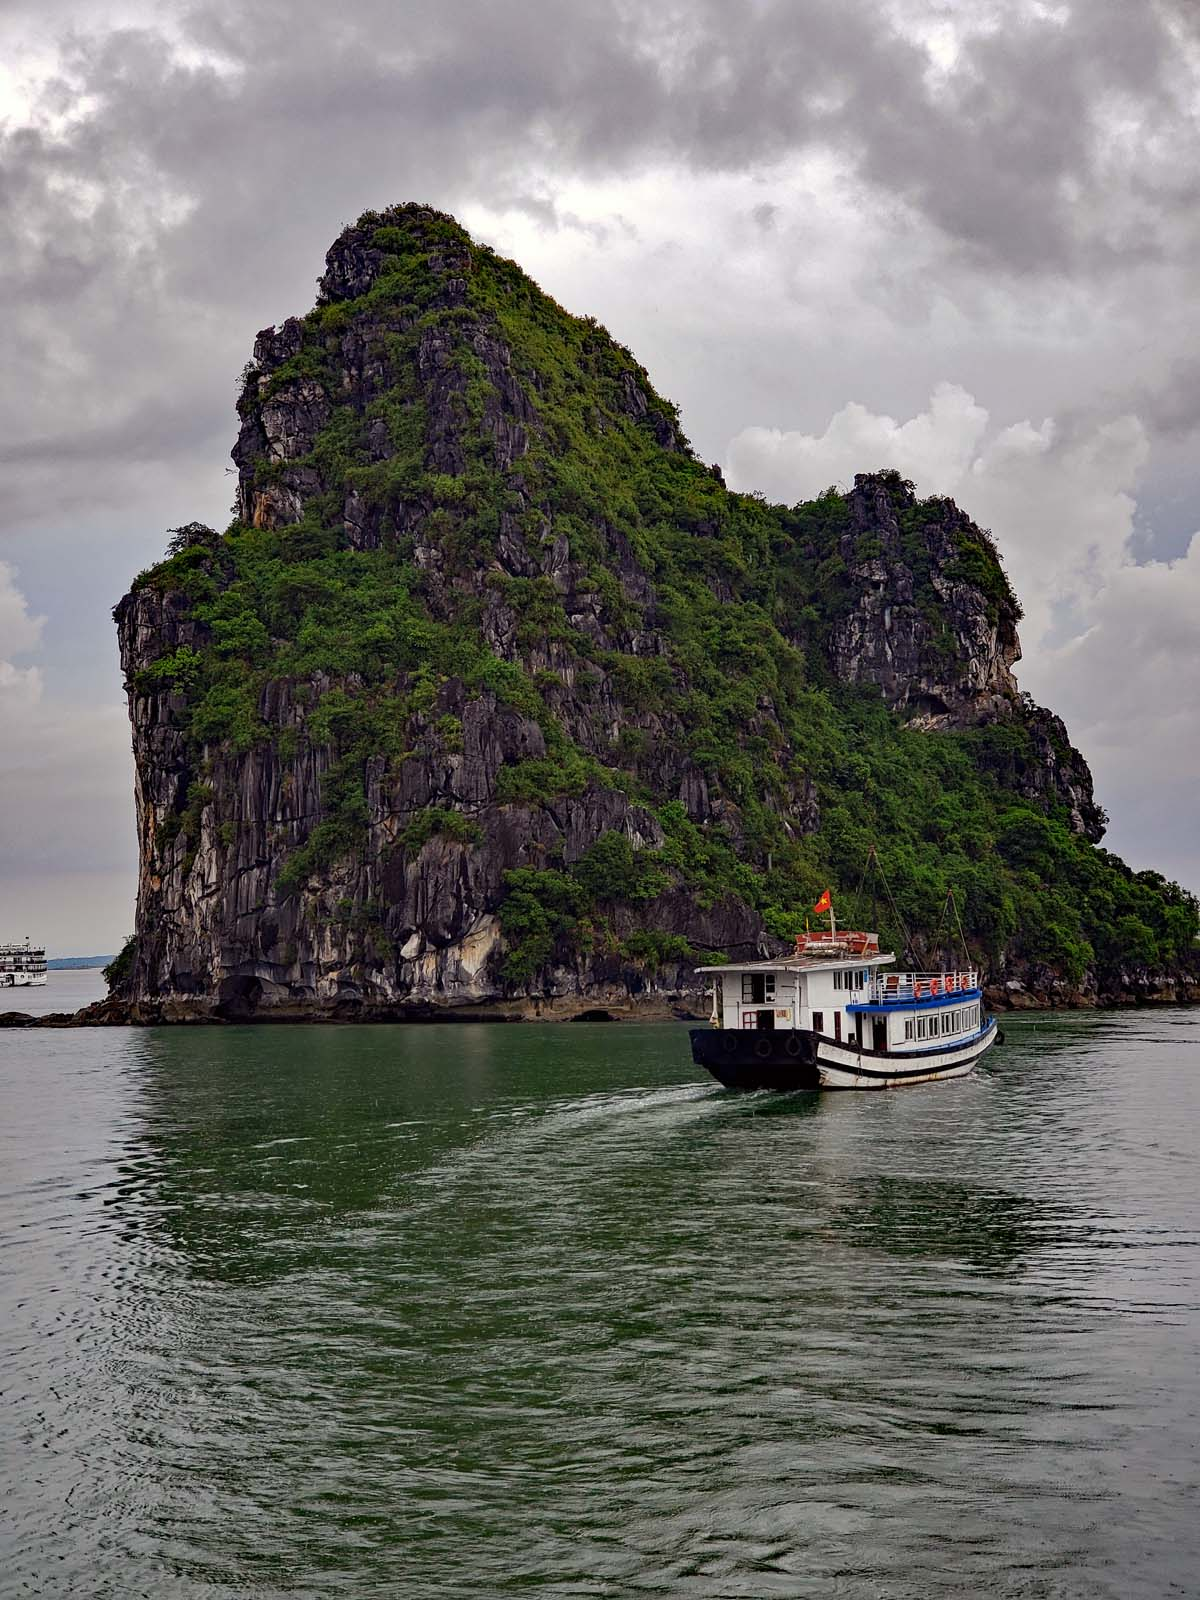 One of the awesome limestone little islet-cliffs in Ha Long Bay.